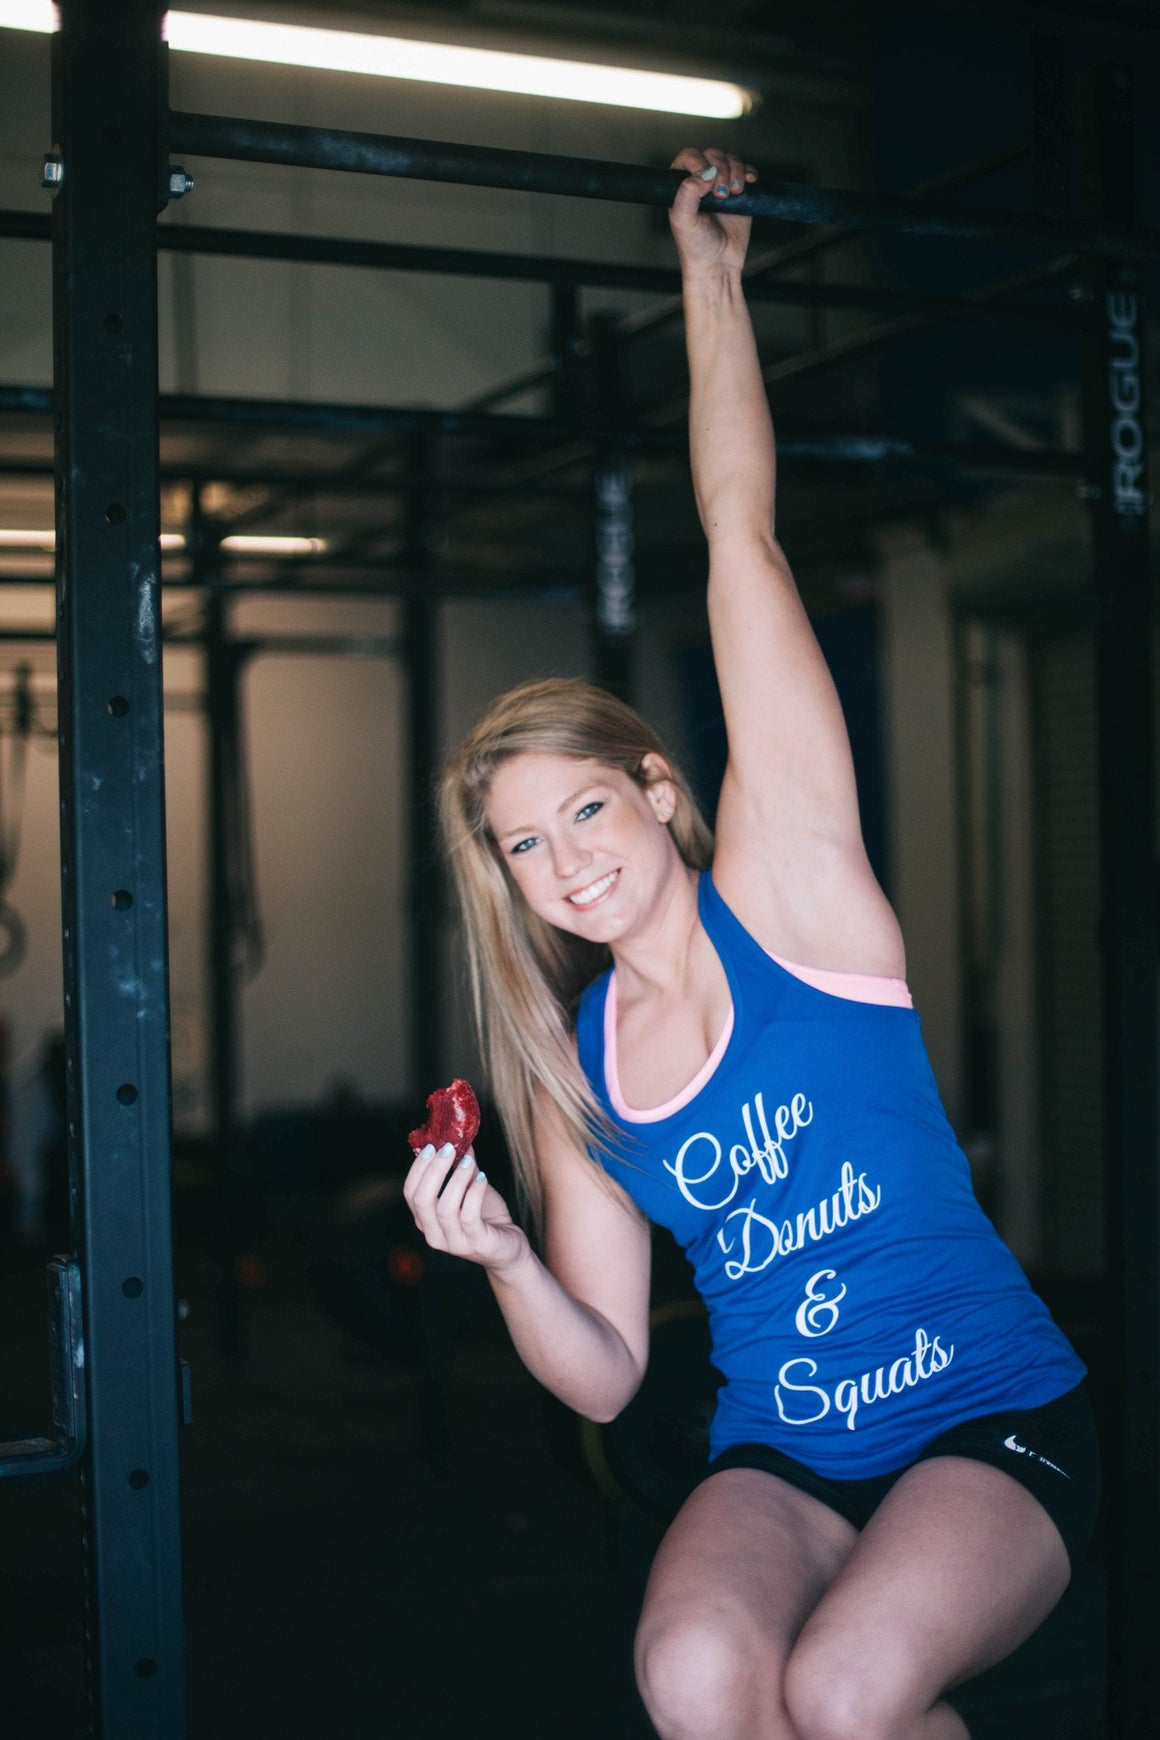 Coffee, Donuts, & Squats- Royal Blue - FitGirls_inspire - 4